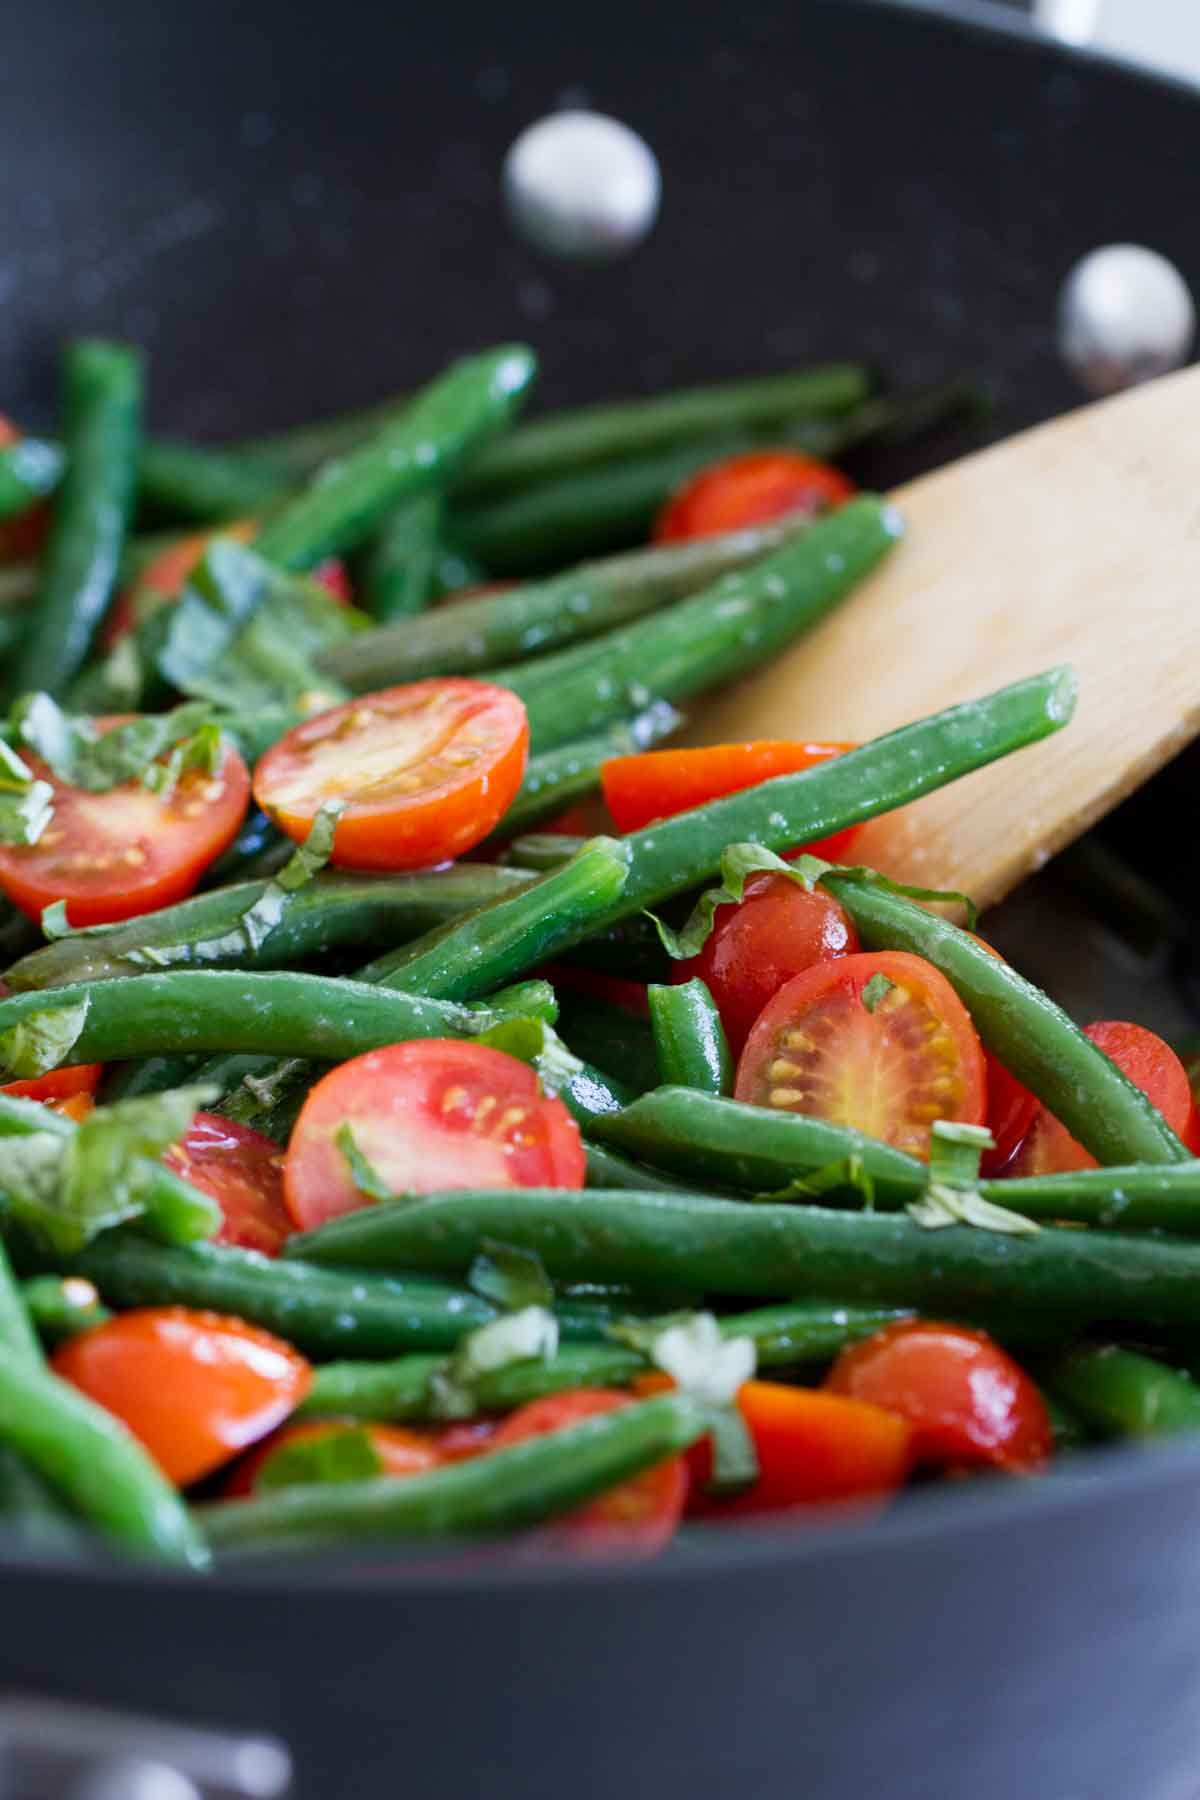 Fresh Sauteed Green Beans in a skillet with cherry tomatoes